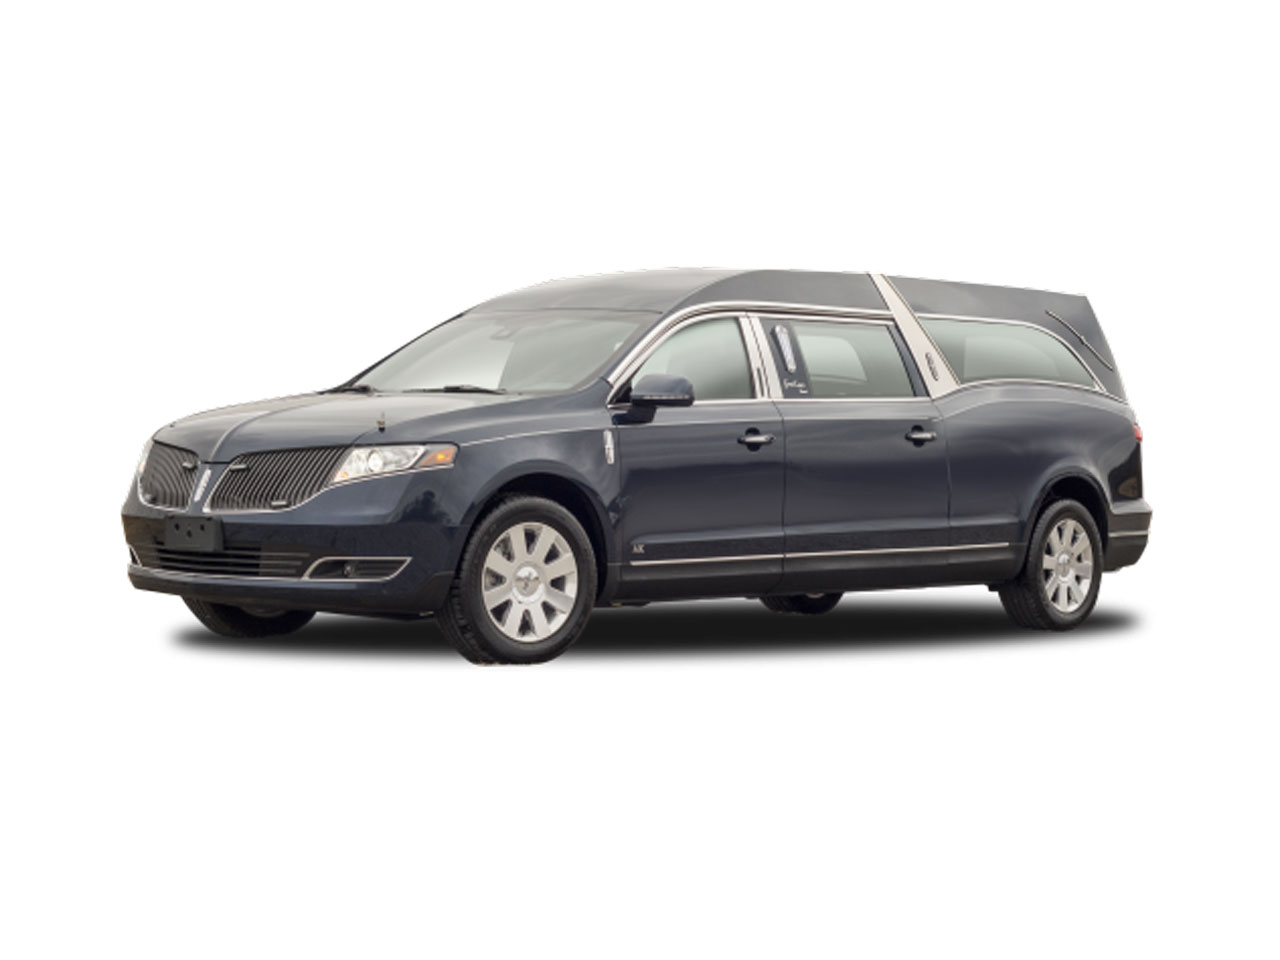 2019 MK Coach Company Grand Legacy Limited Hearse 7